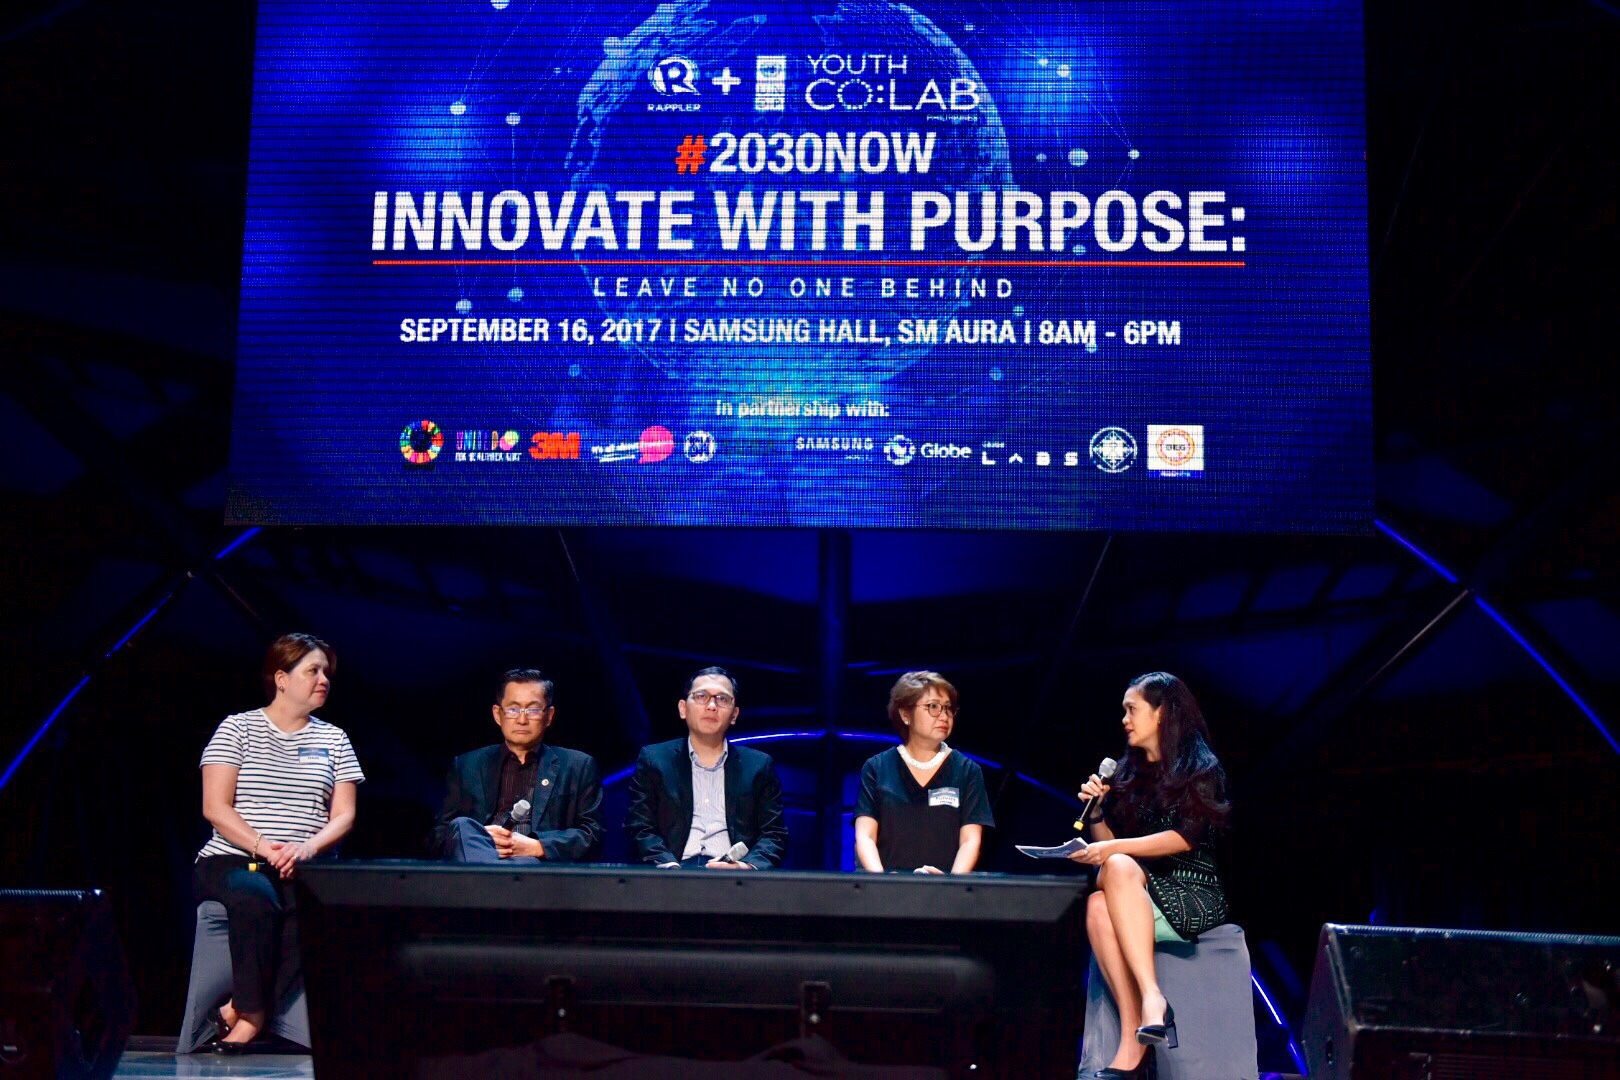 ONGOING DISCUSSION. Government regulators and innovators should discuss the impact of new technology. All photos by LeAnne Jazul/Rappler